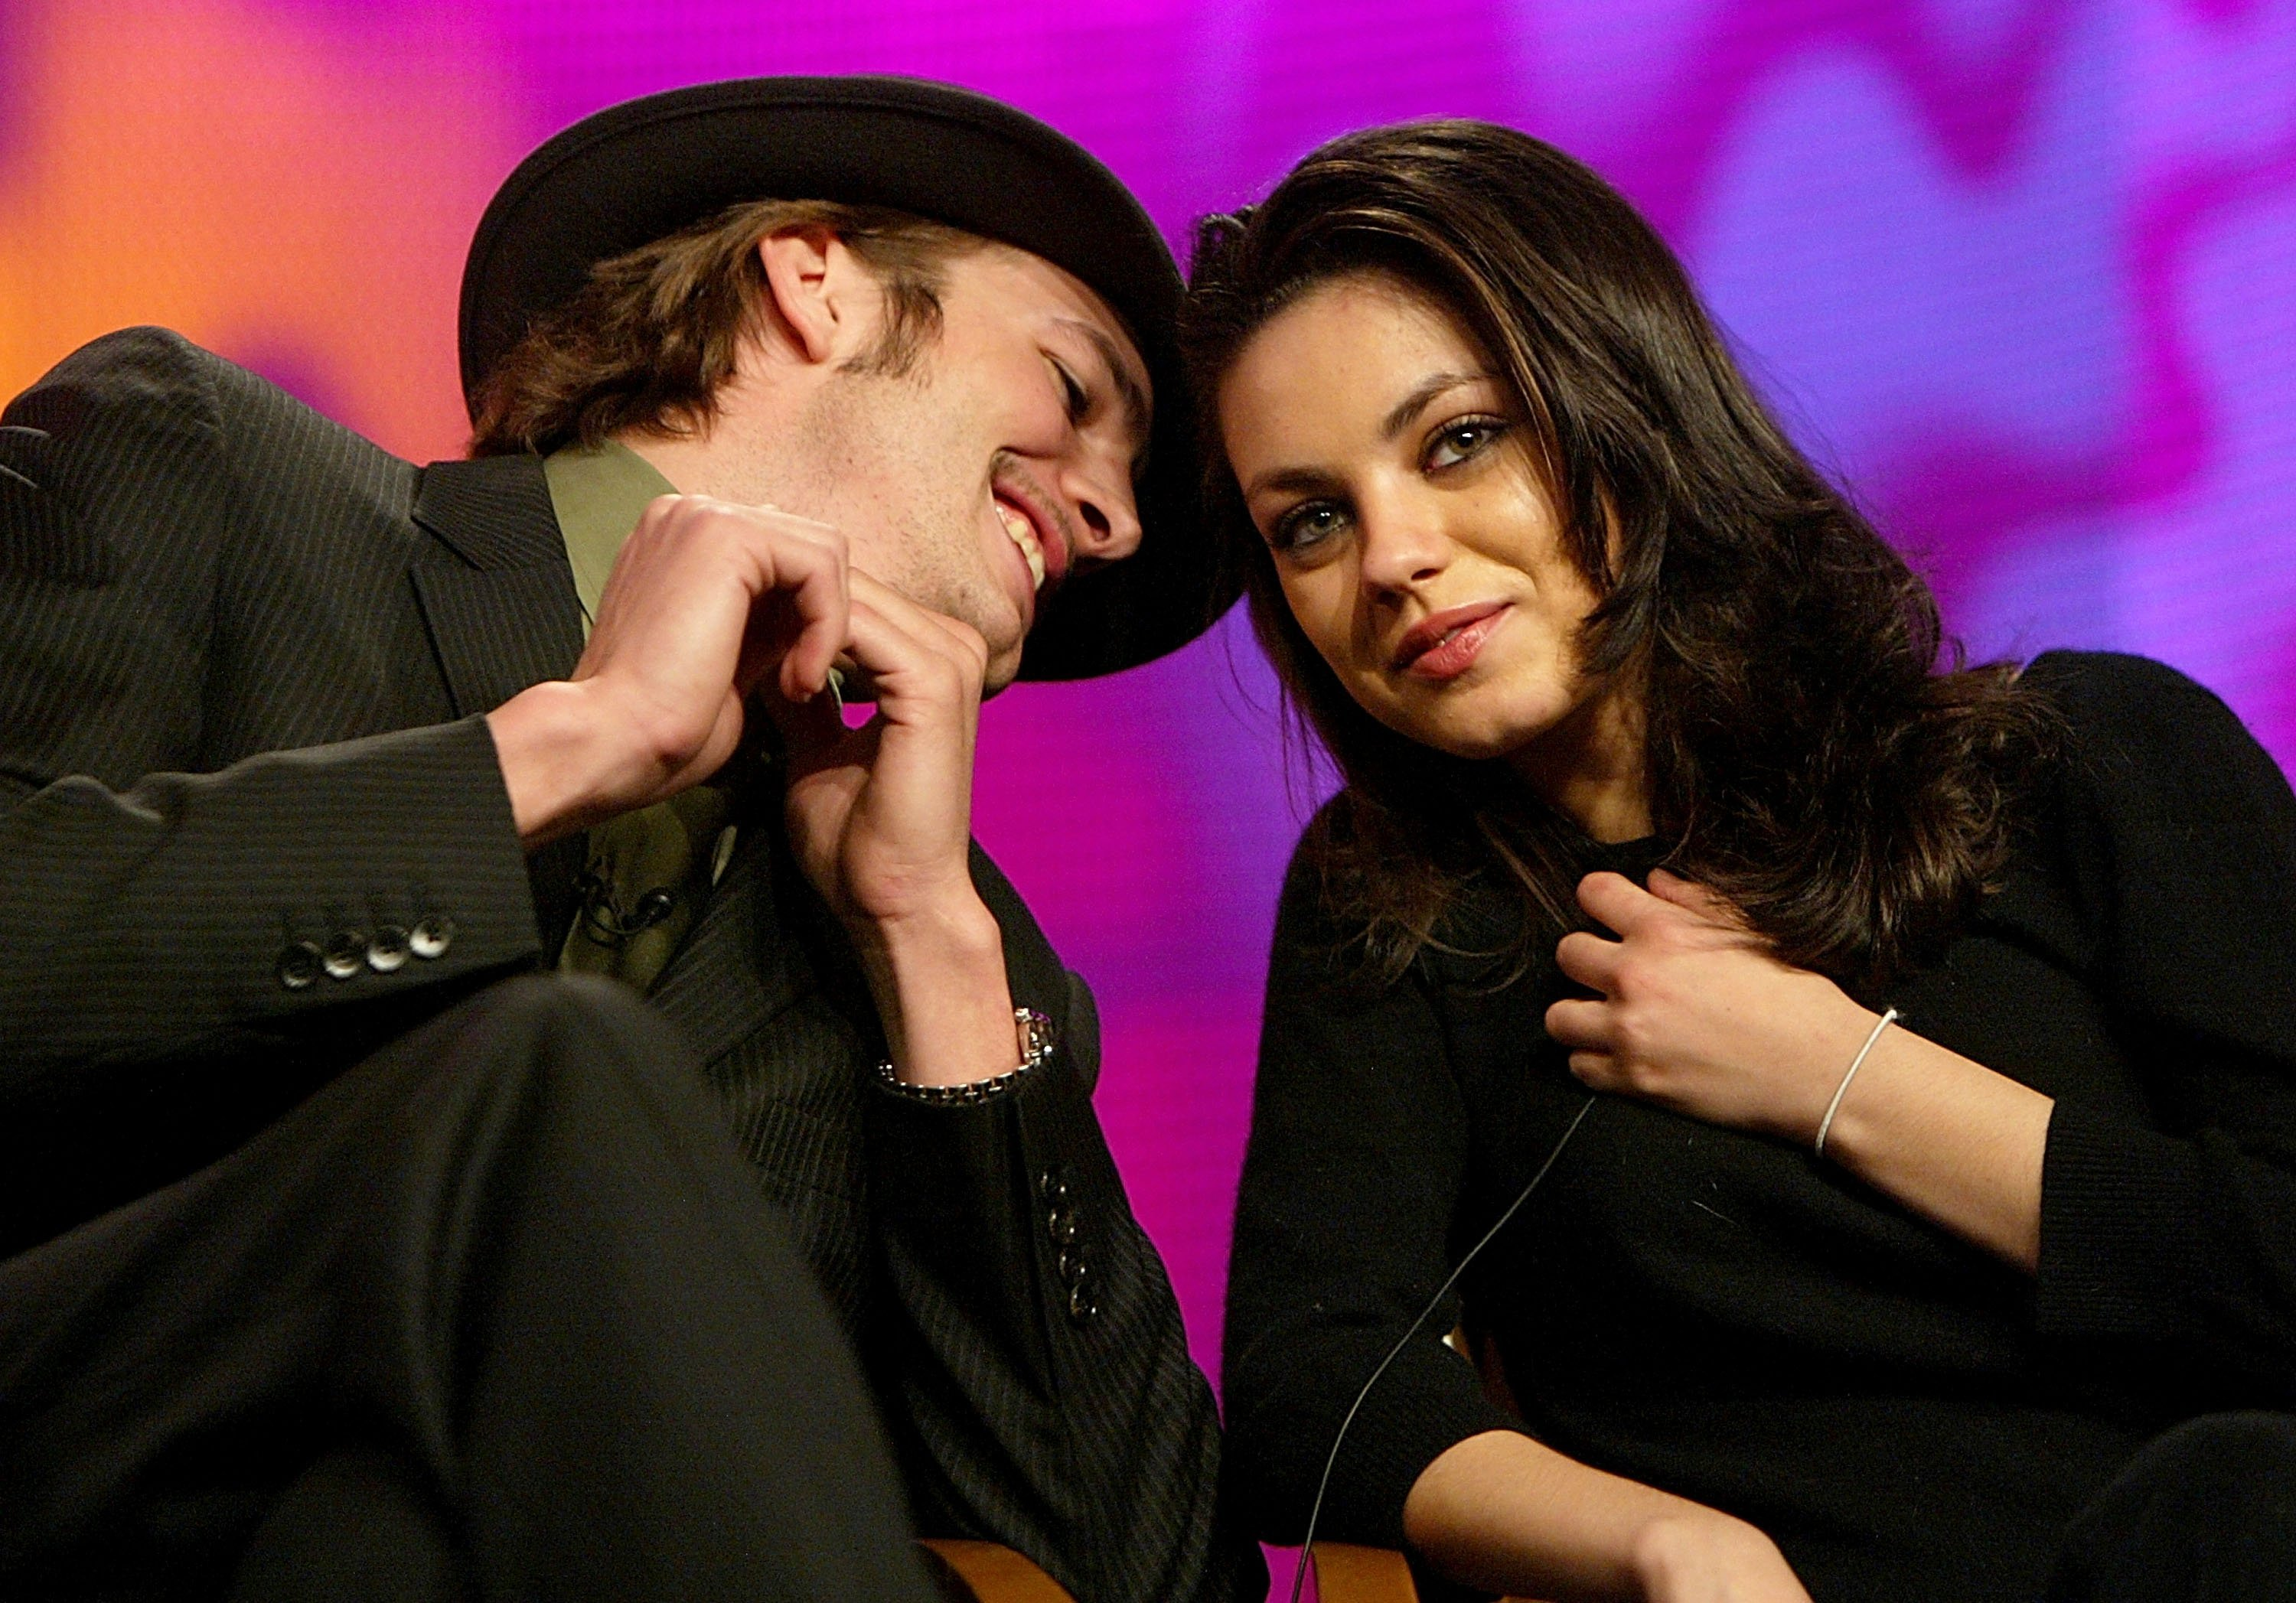 Ashton Kutcher and Mila Kunis at the FOX Television Critics Association Press Tour on January 16, 2004 | Photo: GettyImages